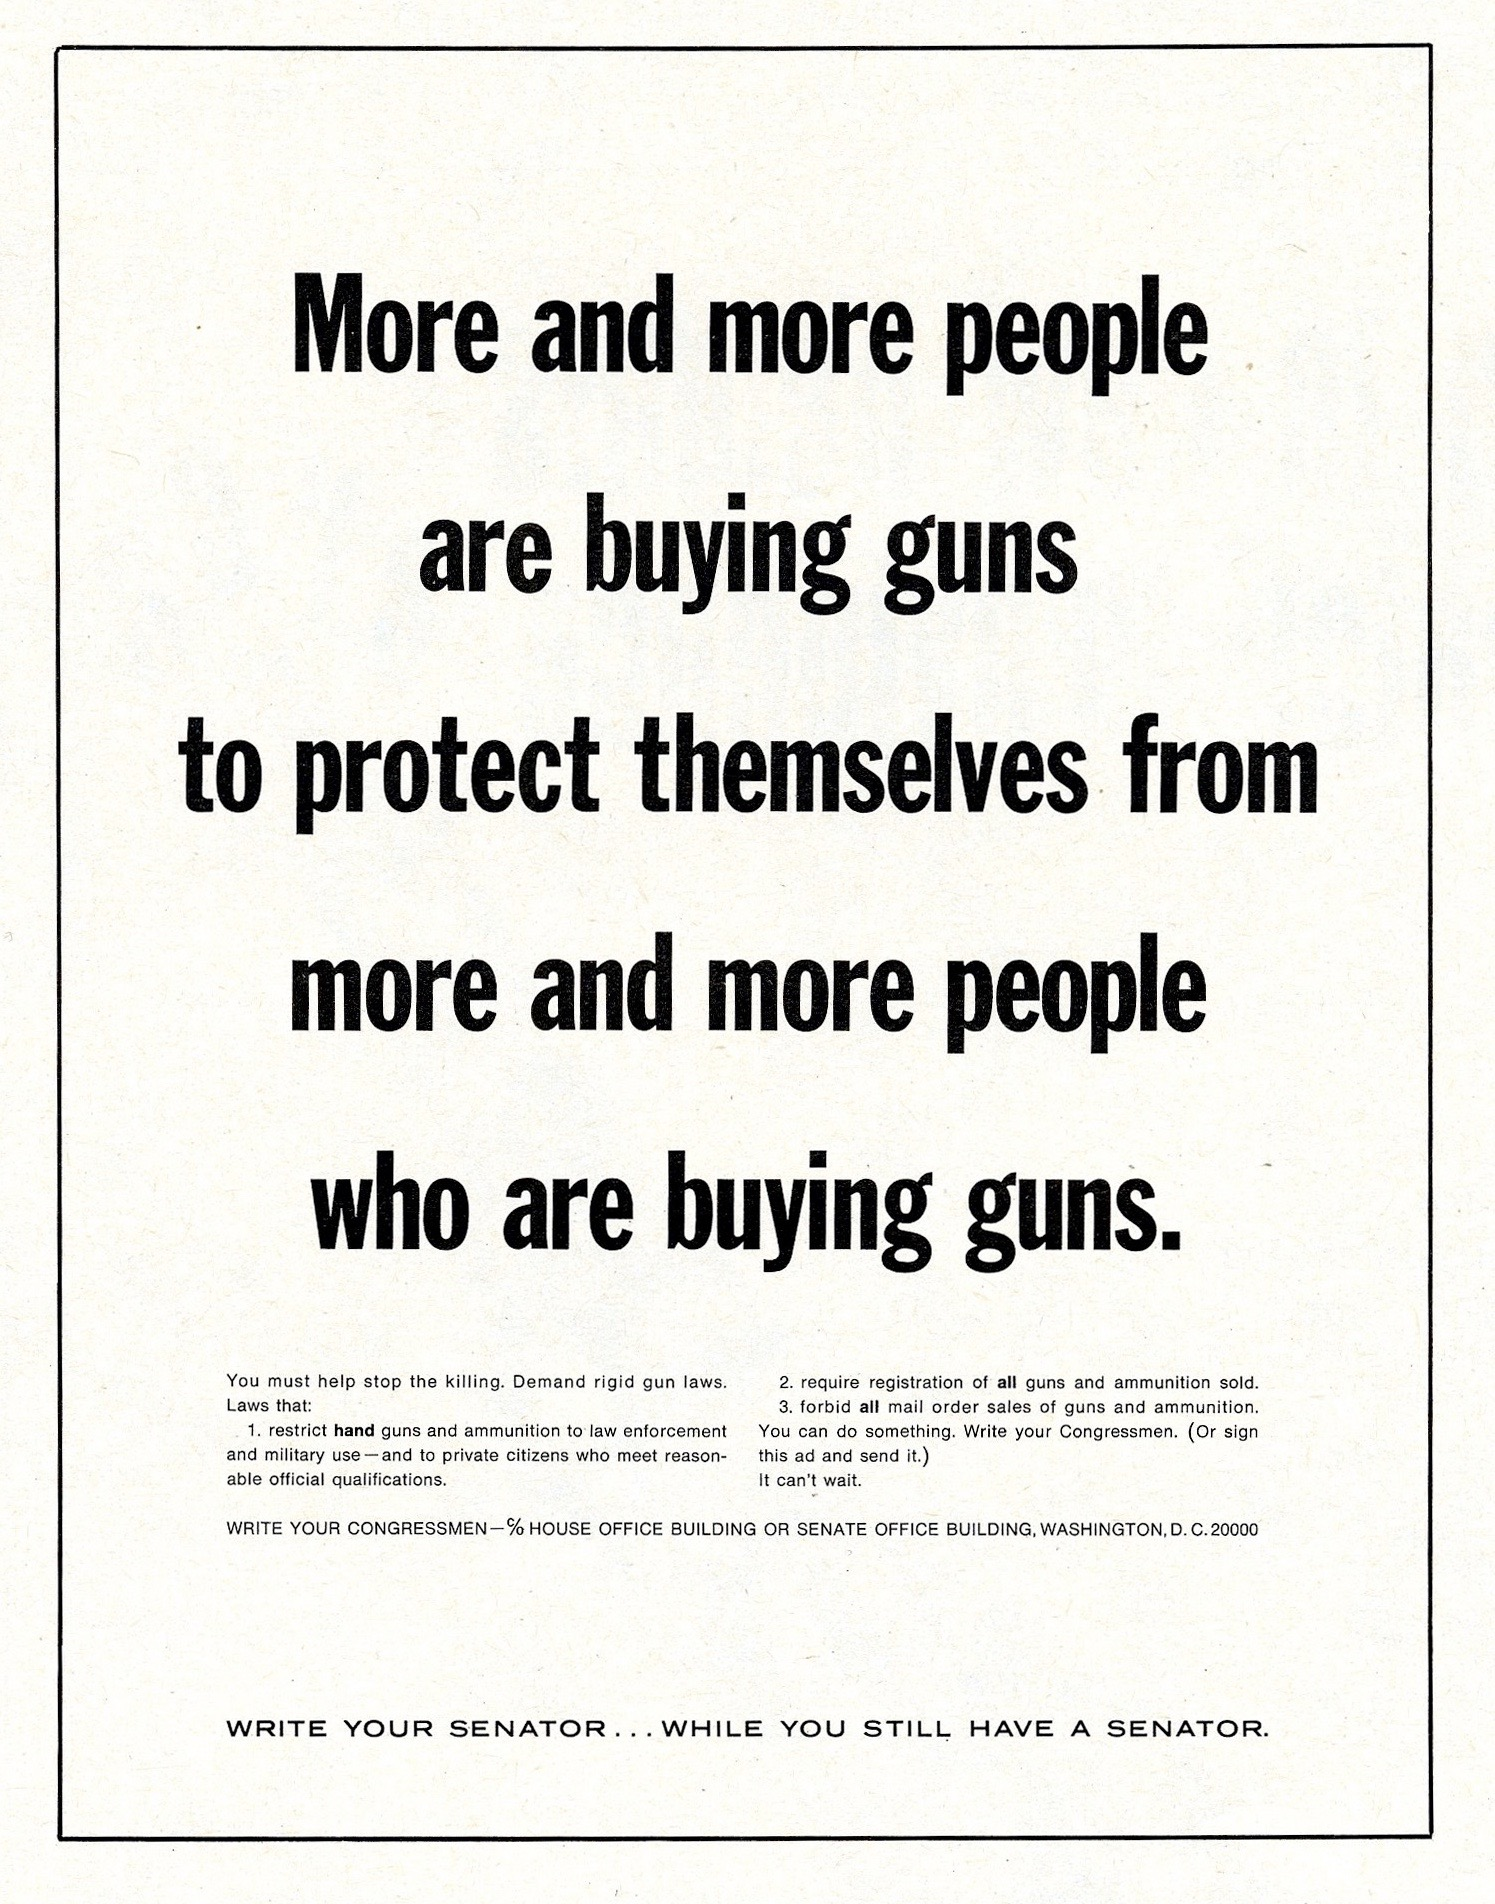 These Jolting Ads from 1968 Catalyzed the Modern Gun Debate